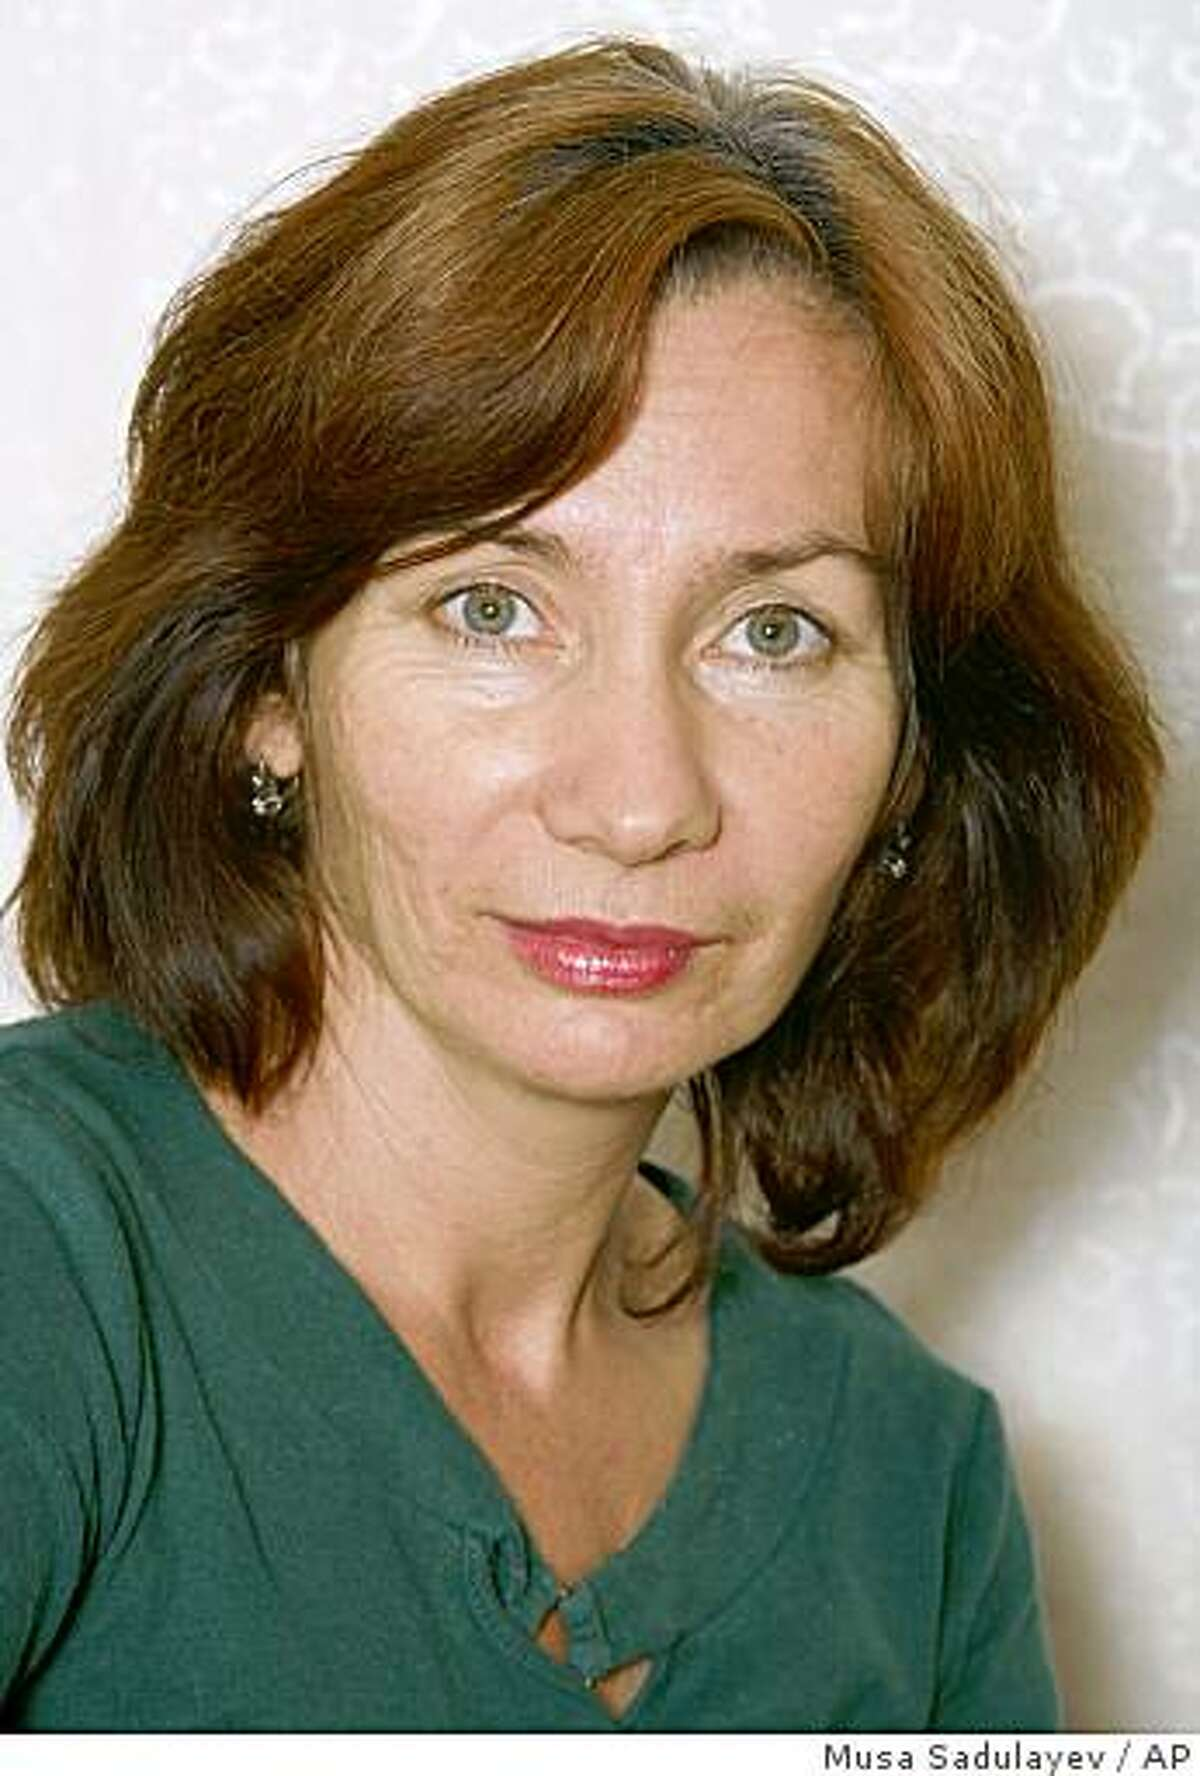 FILE - In this Sept. 15, 2007 file photo Natalya Estemirova, a human rights activist, seen in the Chechen capital, Grozny, southern Russia. Natalya Estemirova, a prominent human rights advocate, was kidnapped and killed in Chechnya Wednesday July 15, 2009. Her body with gunshot wounds was found in the neighboring region of Ingushetia. (AP Photo/Musa Sadulayev)